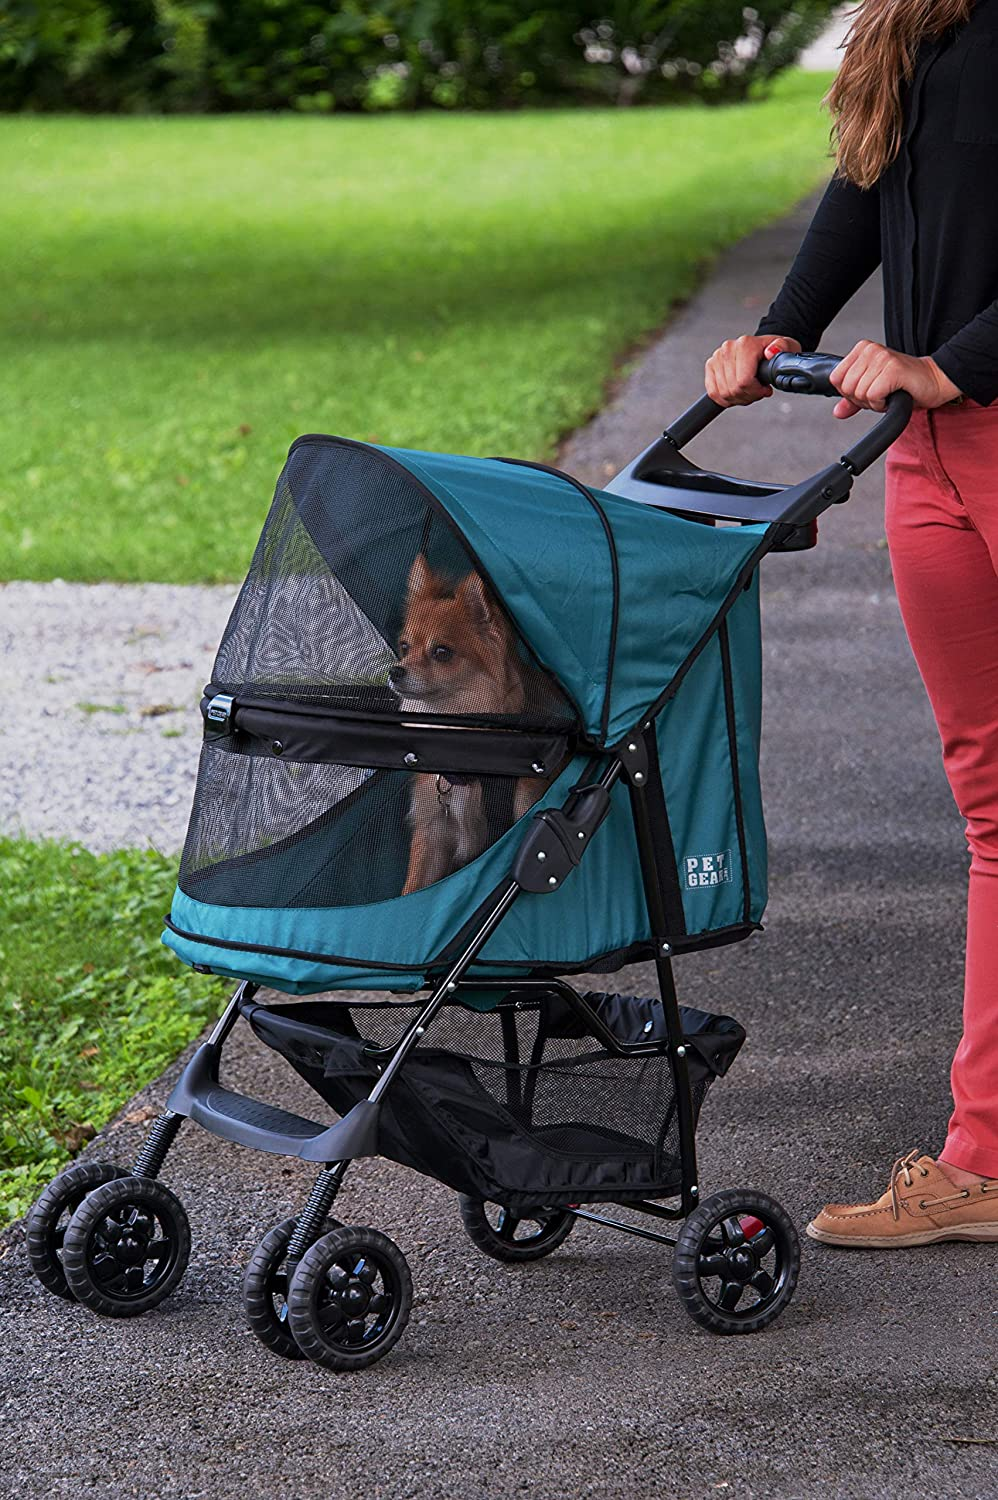 Pet Gear No-Zip Happy Trails Pet Stroller for Cats Dogs, Zipperless Entry, Easy Fold with Removable Liner, Storage Basket Cup Holder